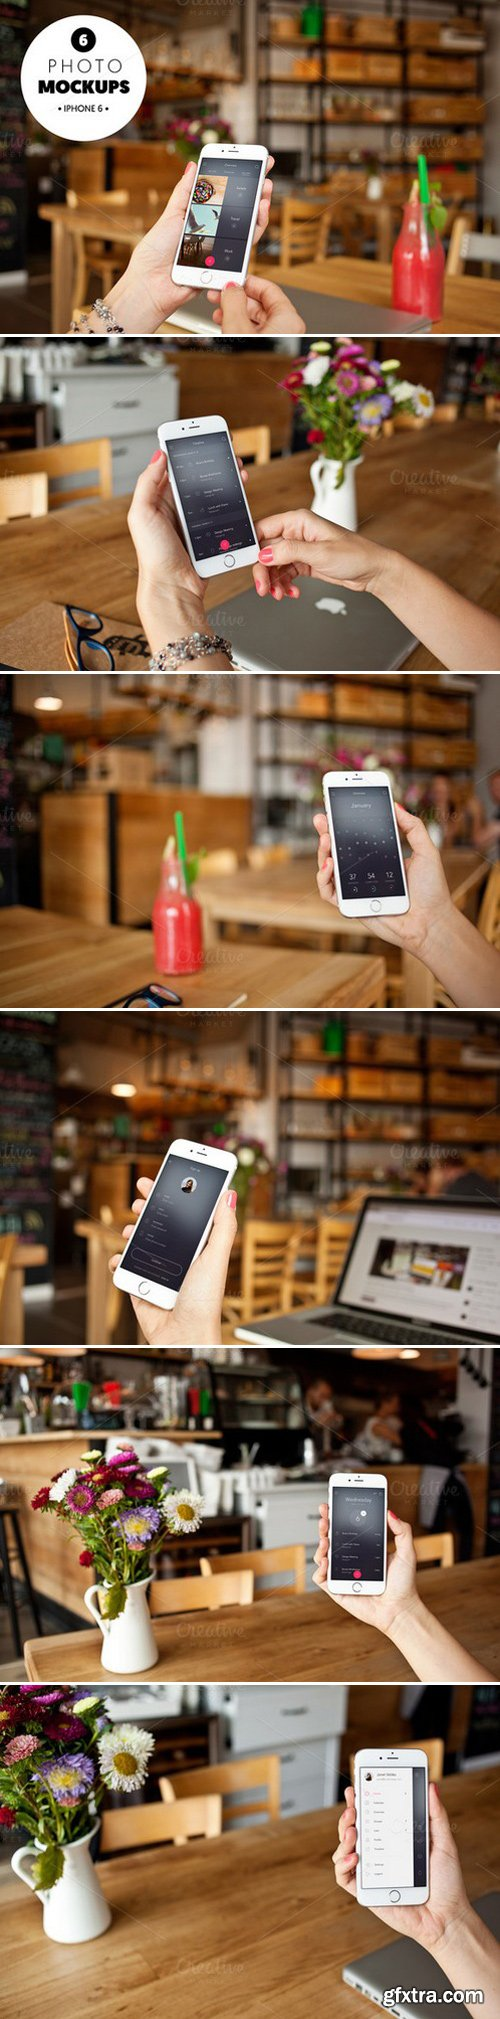 CM - iphone 6 in the cafe-6 photo mockups 442591